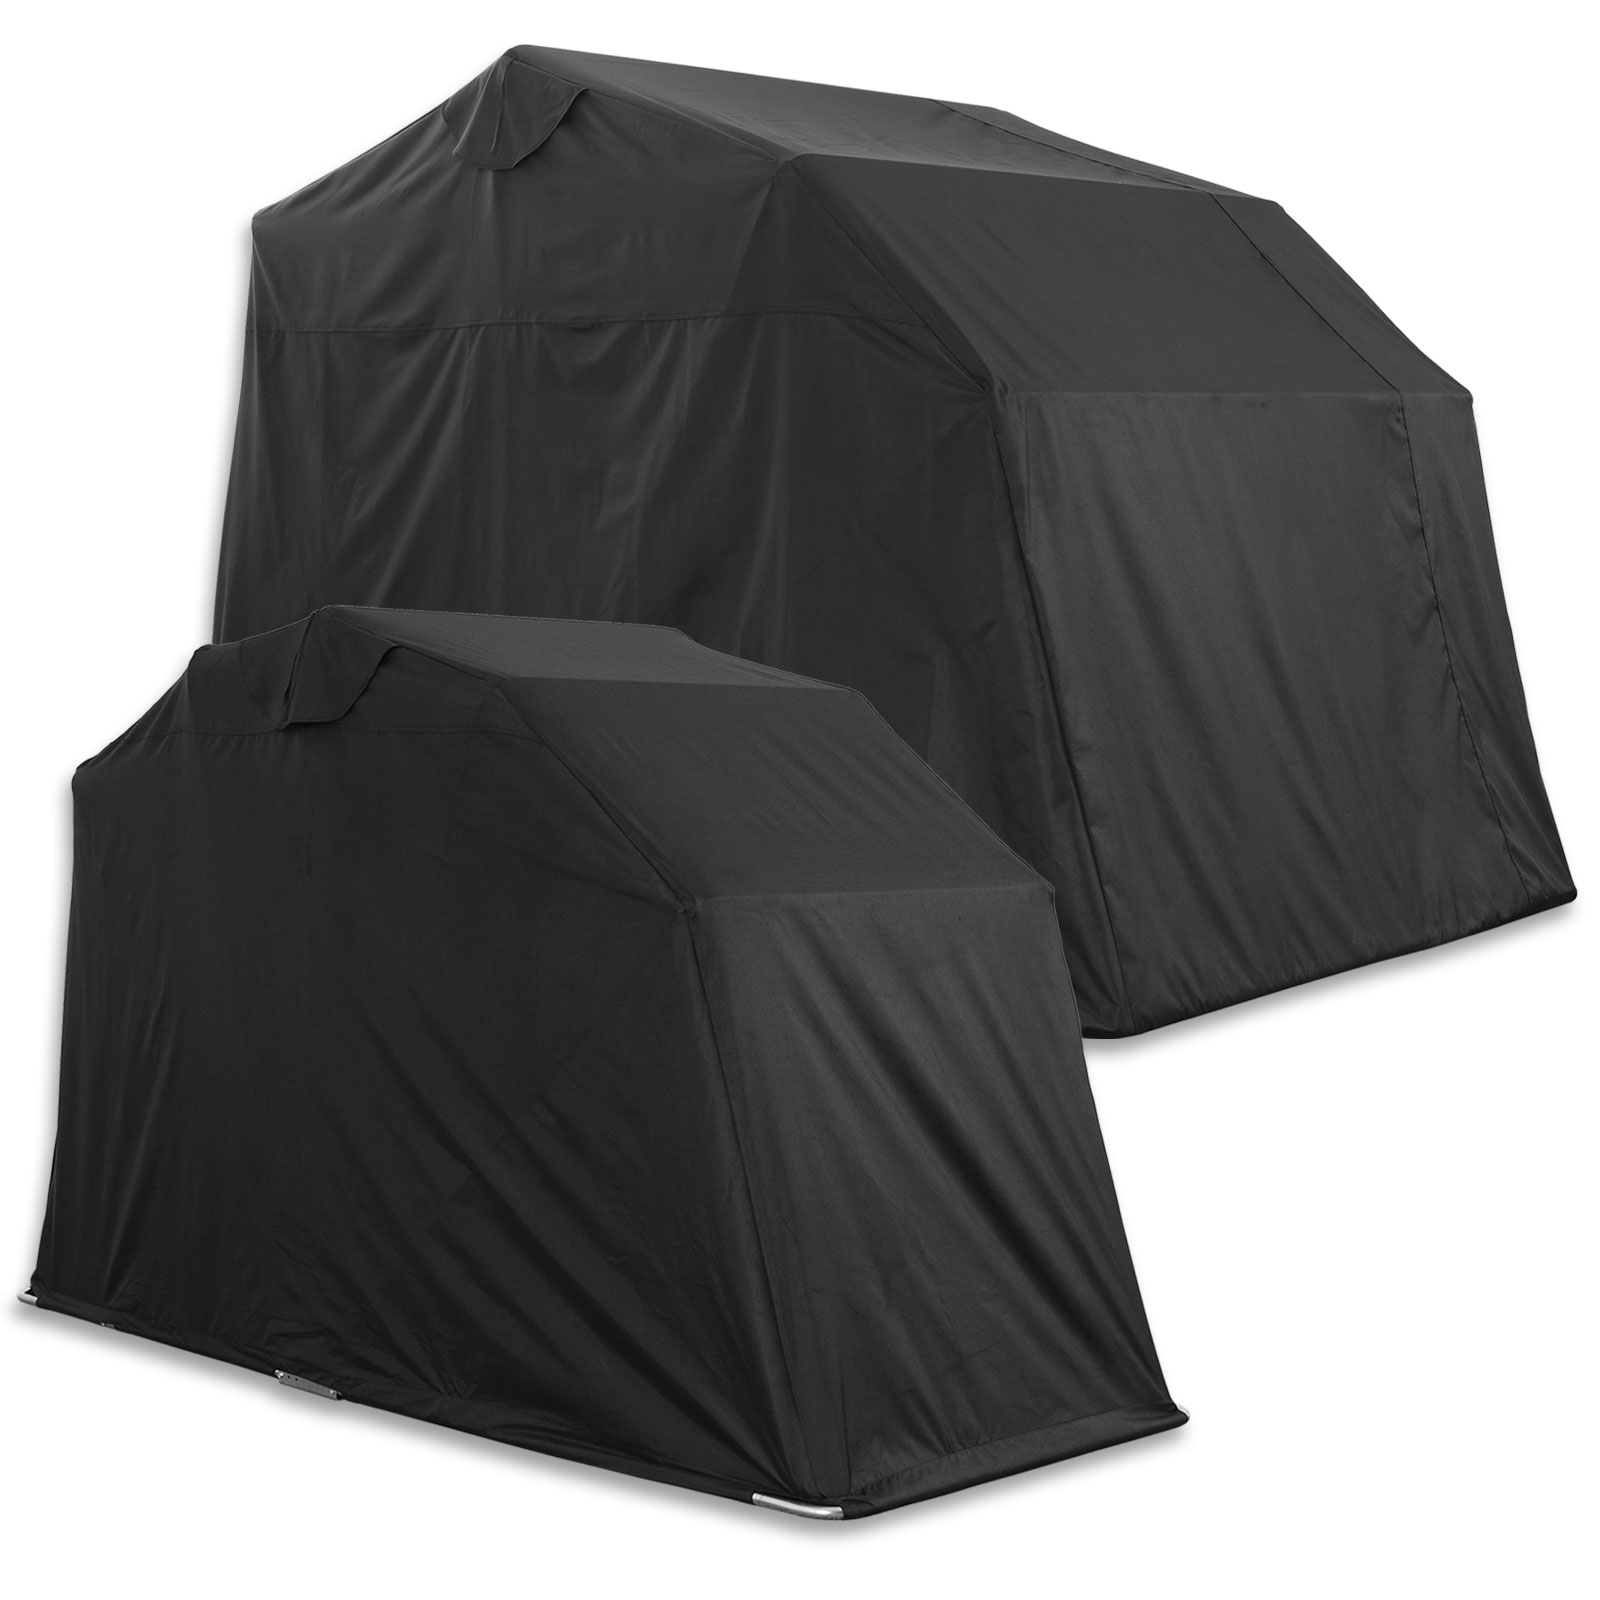 Outdoor motorcycle cover tent folding motorbike storage - Motorcycle foldable garage tent cover ...